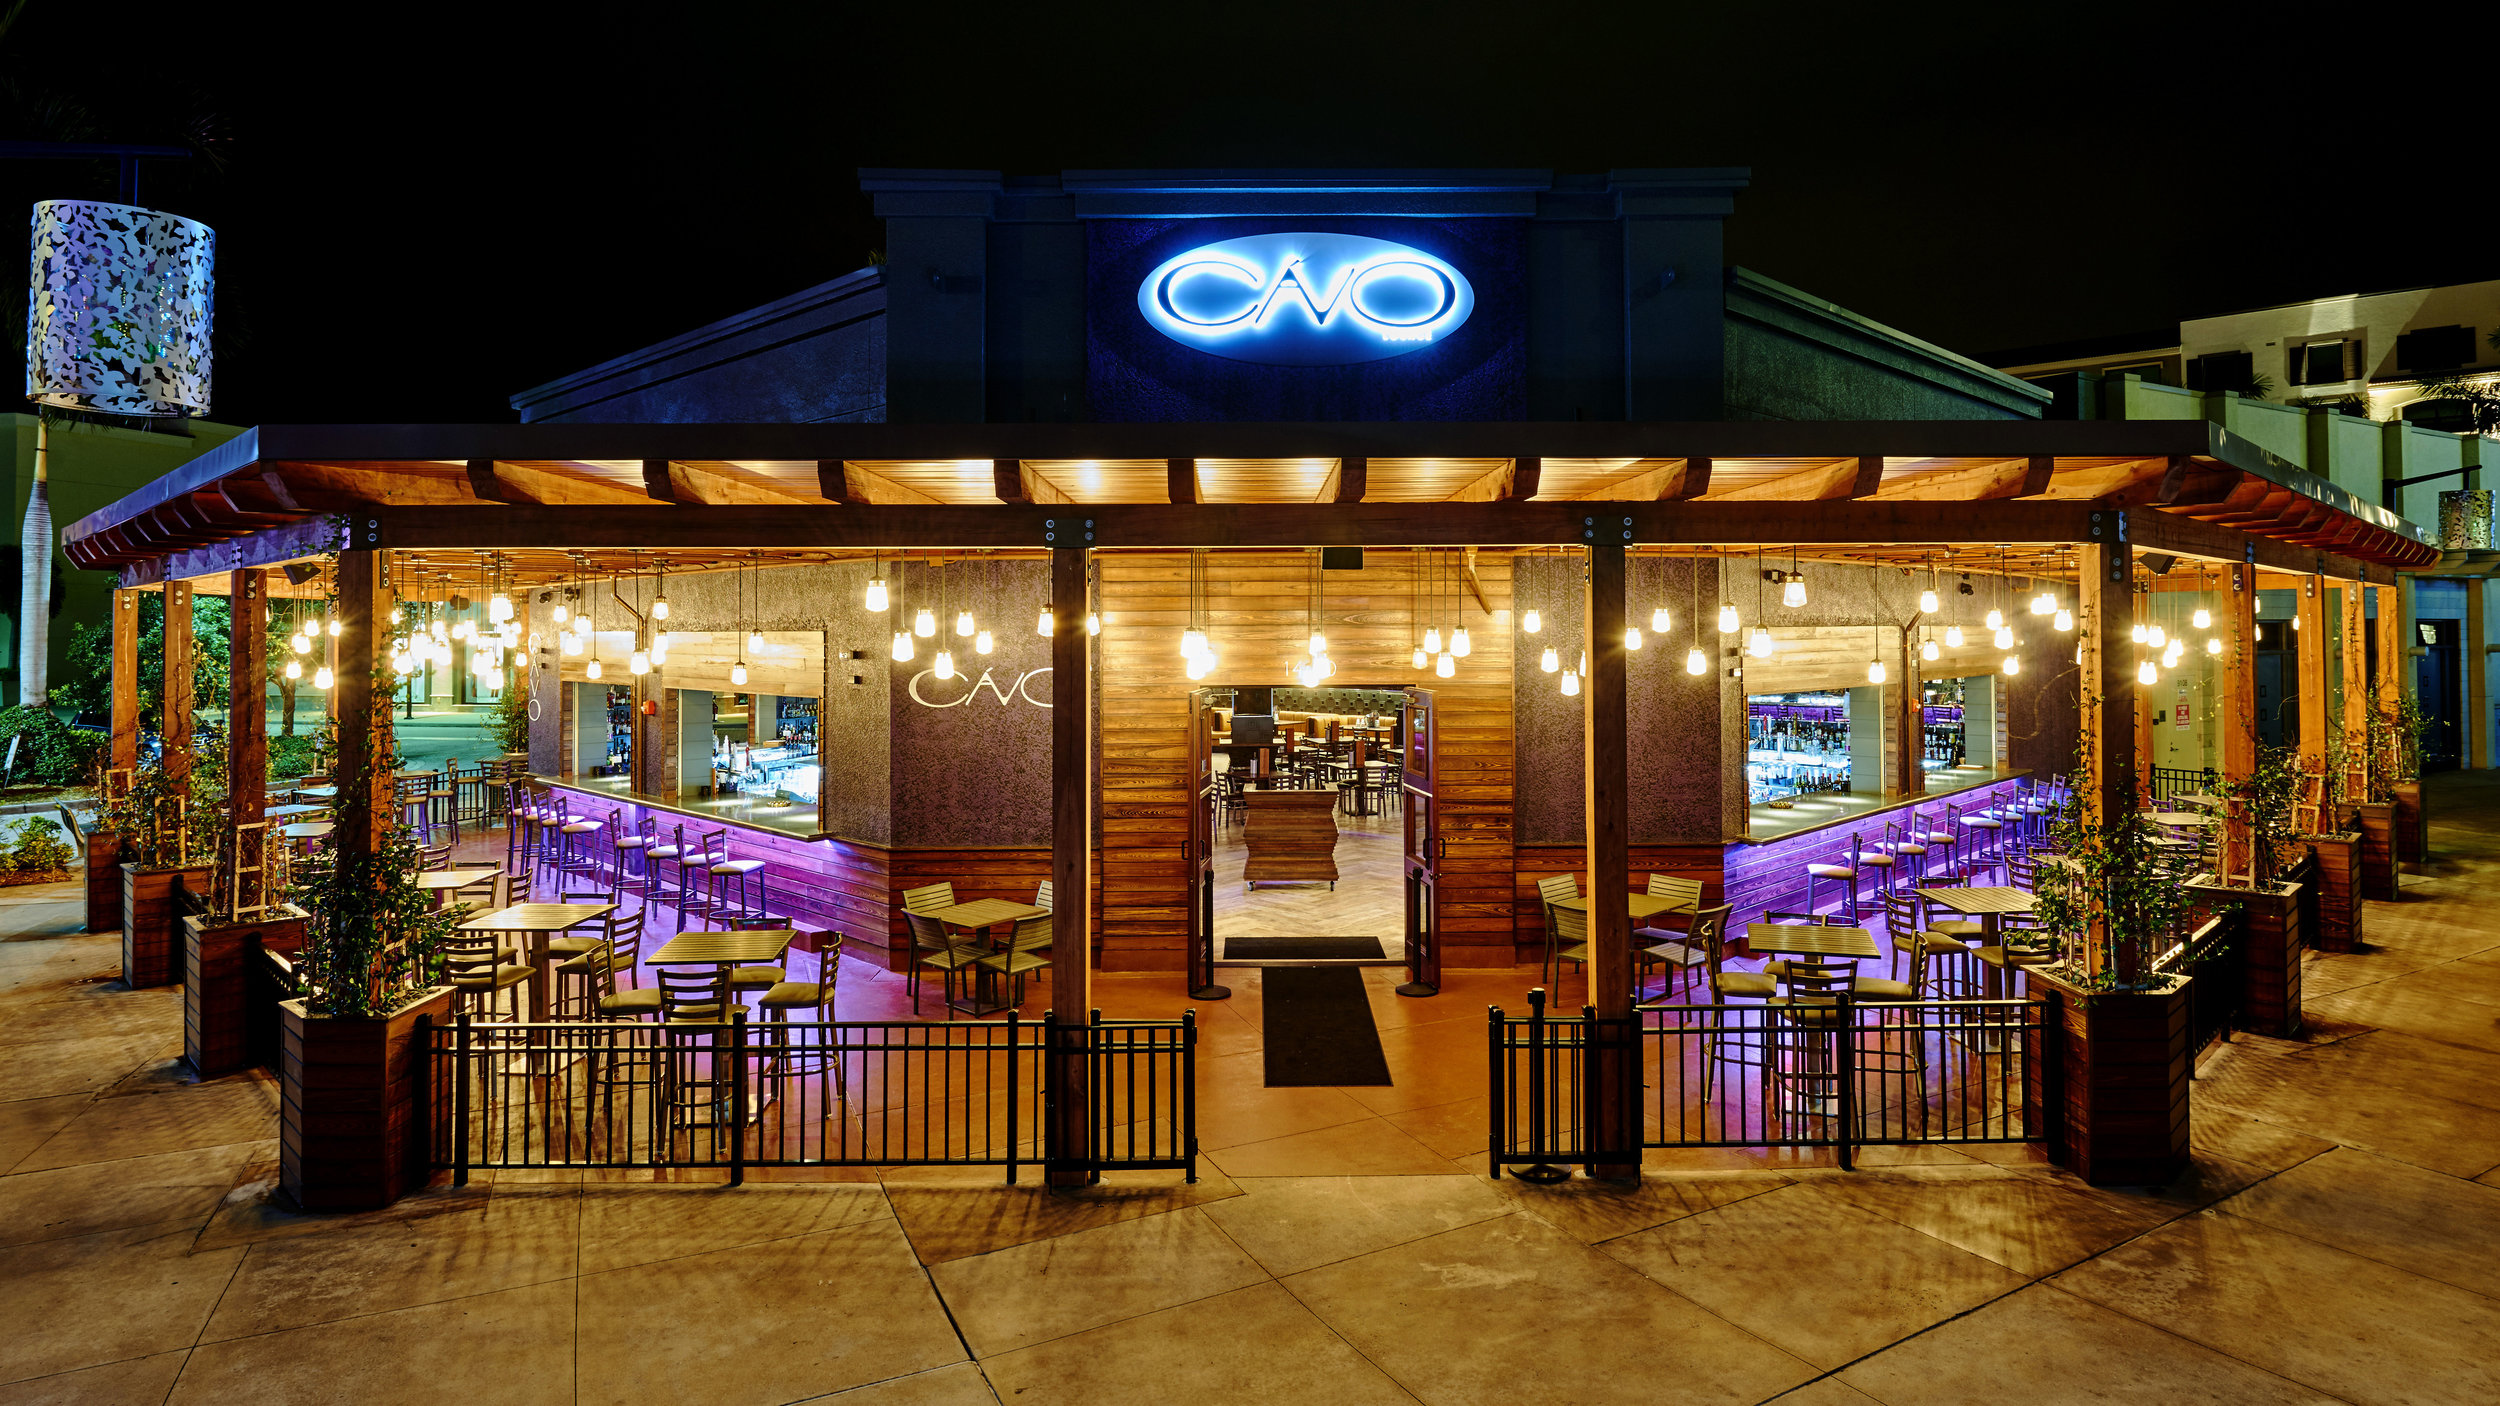 CAVO_OUTSIDE_FRONT_Before.jpg